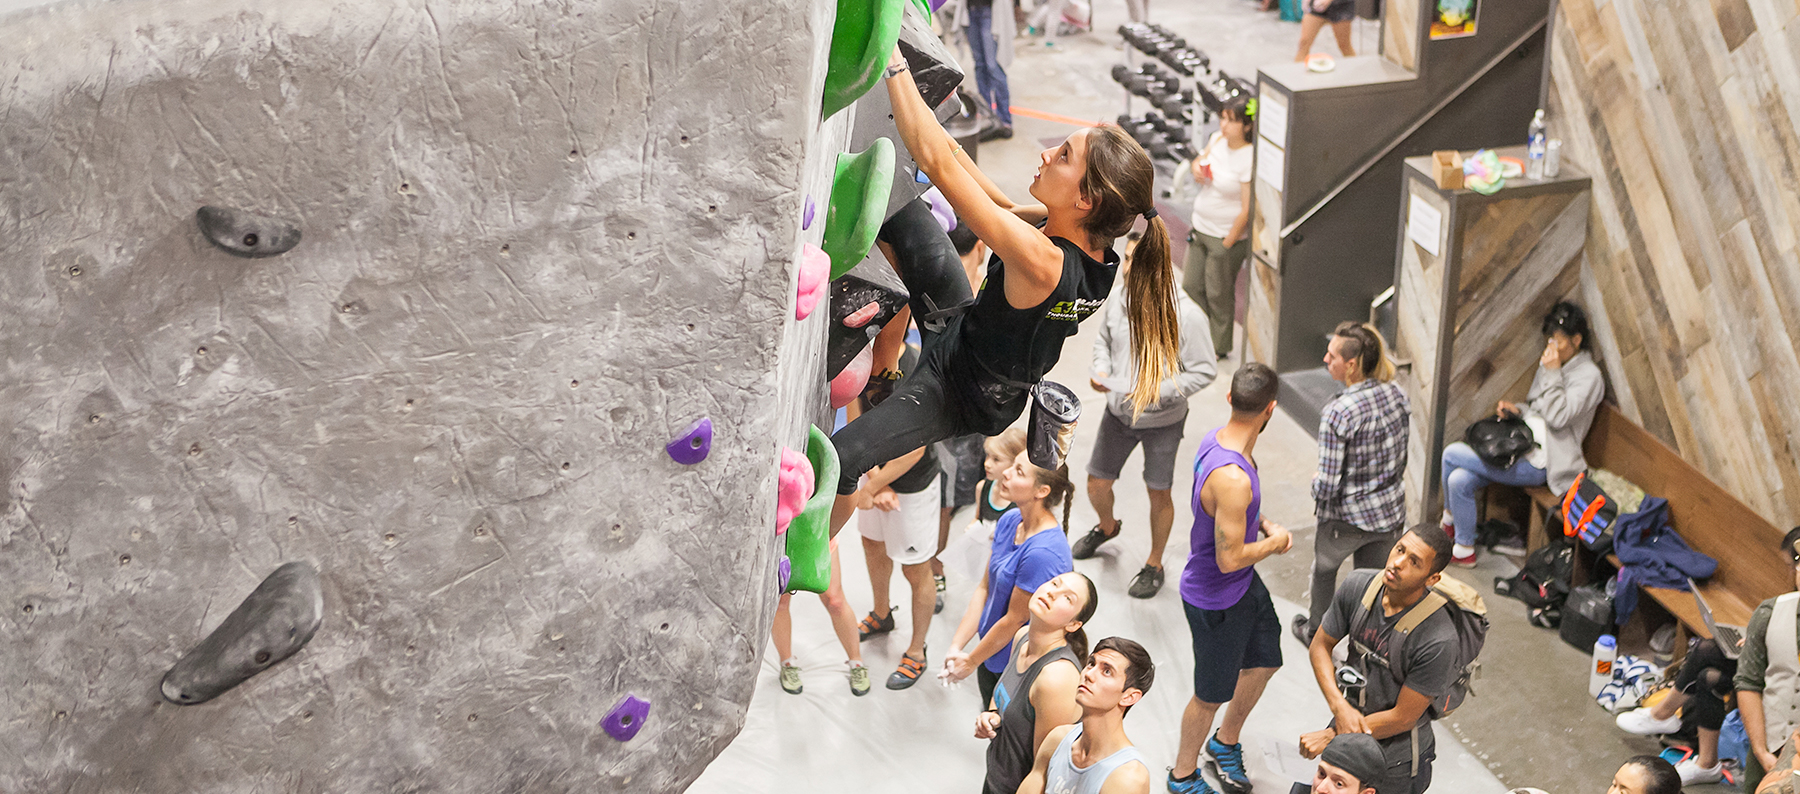 Climbing that is Community Centered